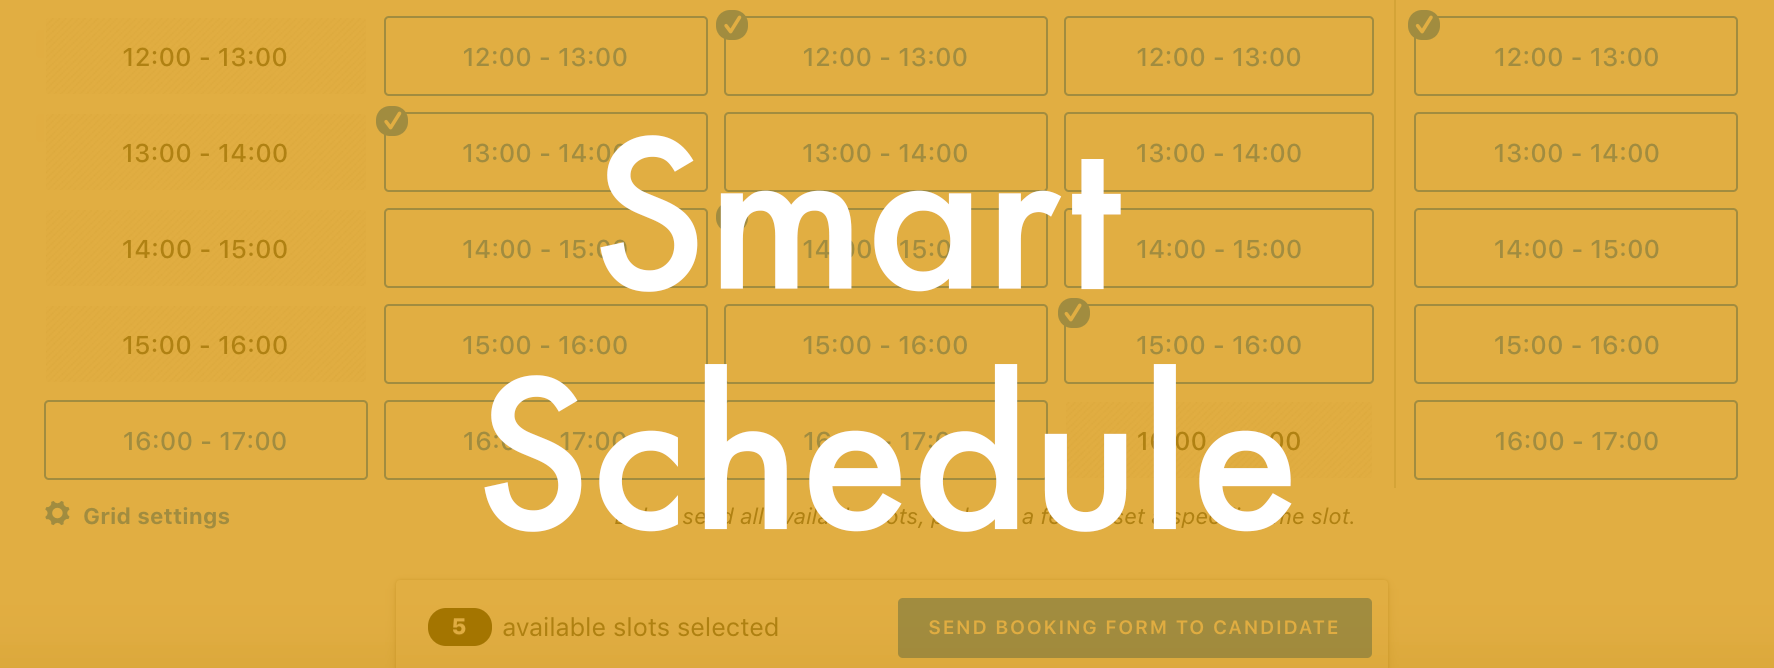 smart schedule blog header-1